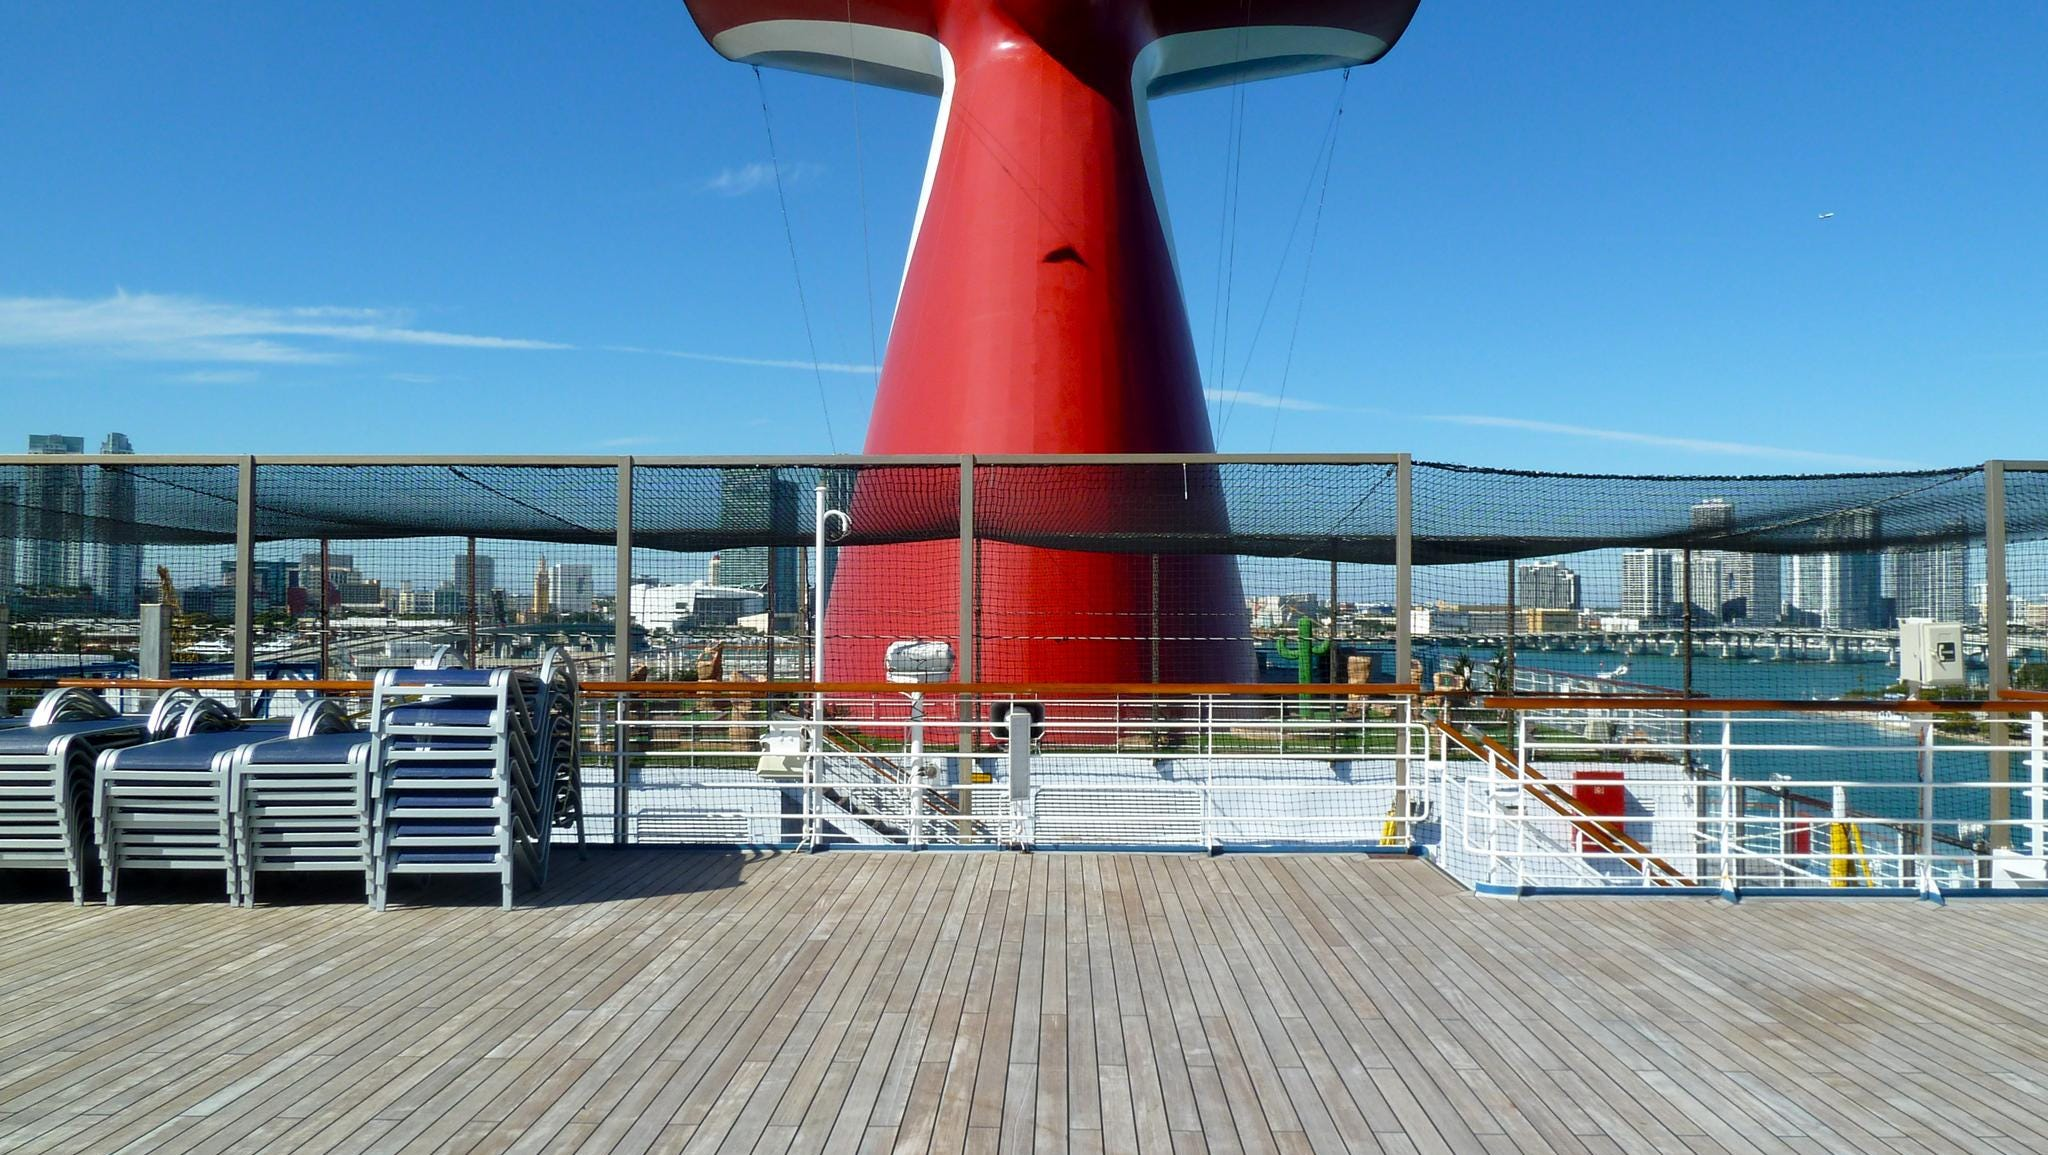 Deck 12 begins anew aft of the main pool area with a small observation platform.